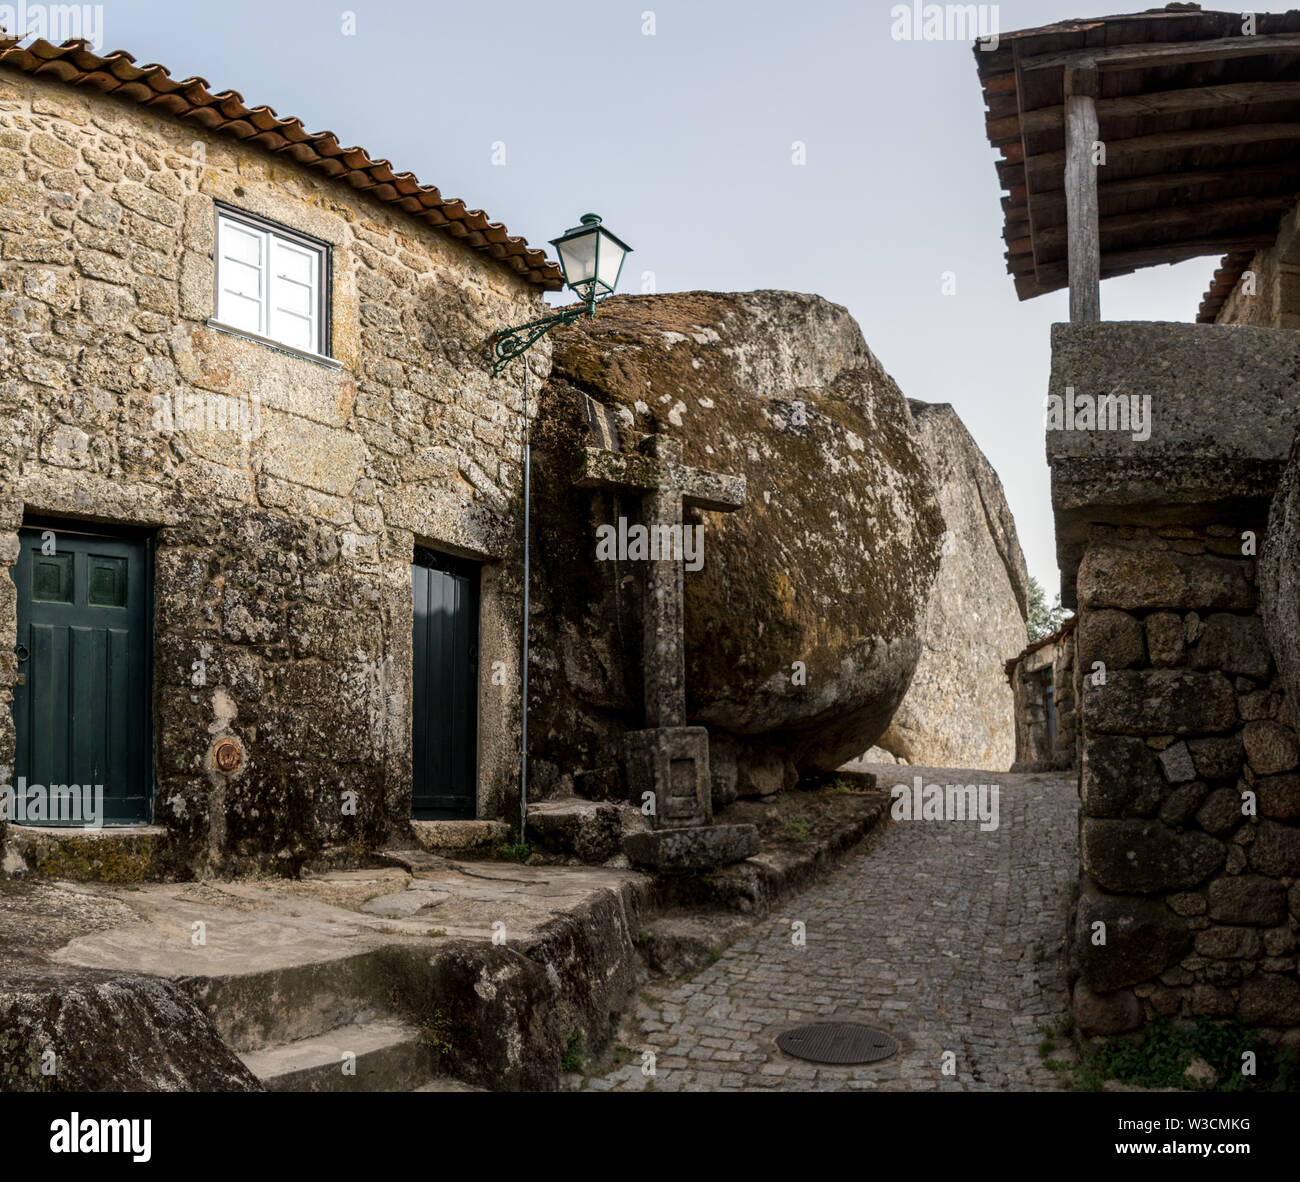 The narrow streets and rustic houses of the village of Monsanto, Portugal Stock Photo